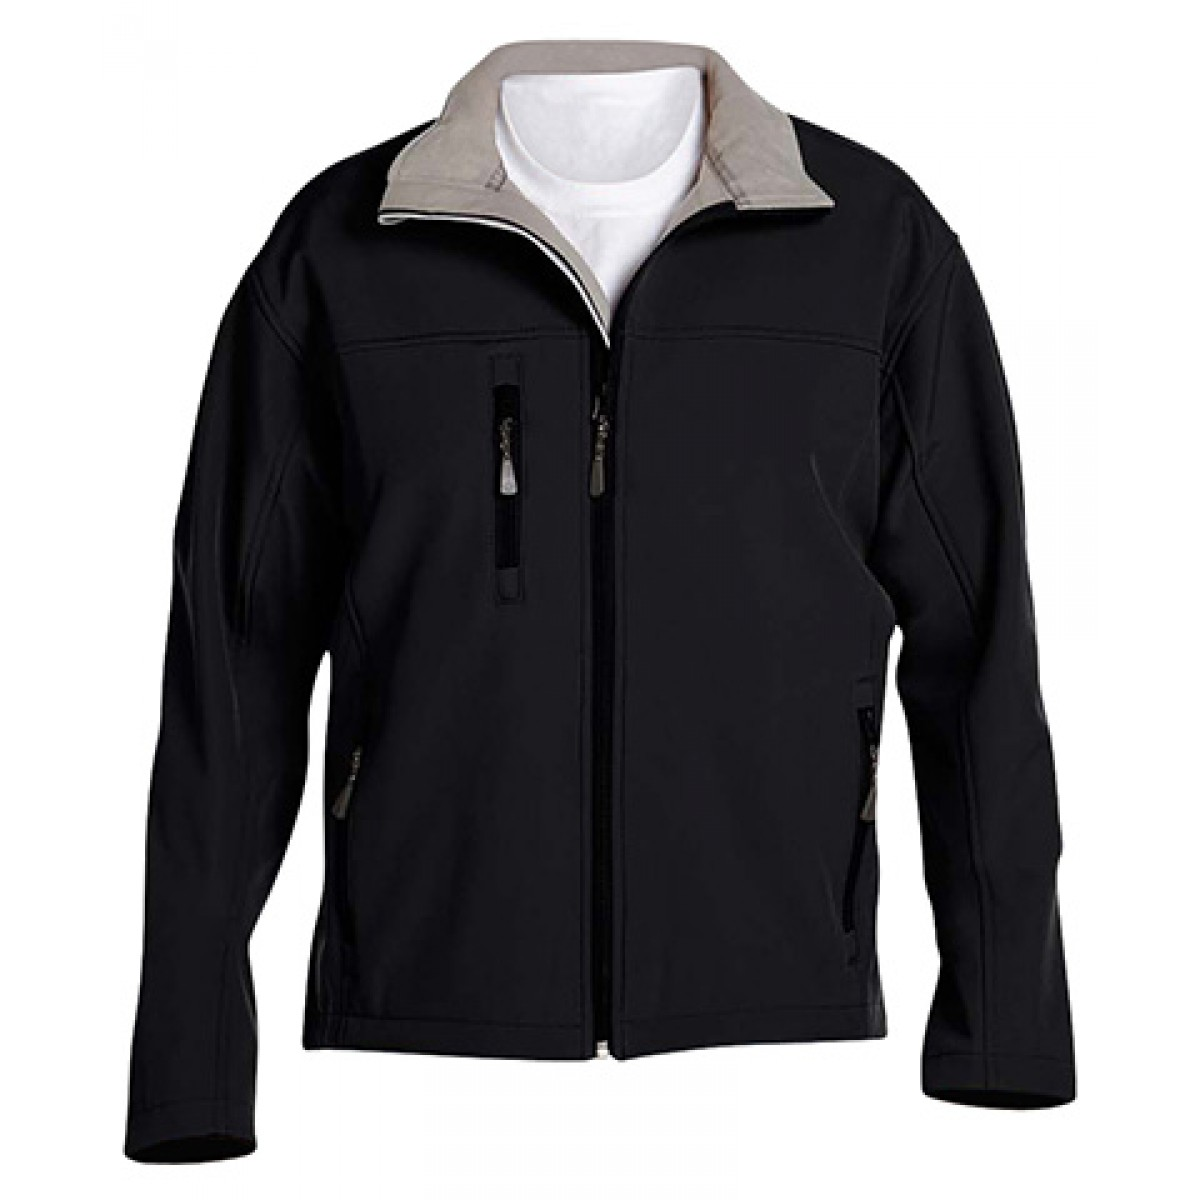 Men's Soft Shell Jacket-Black-L